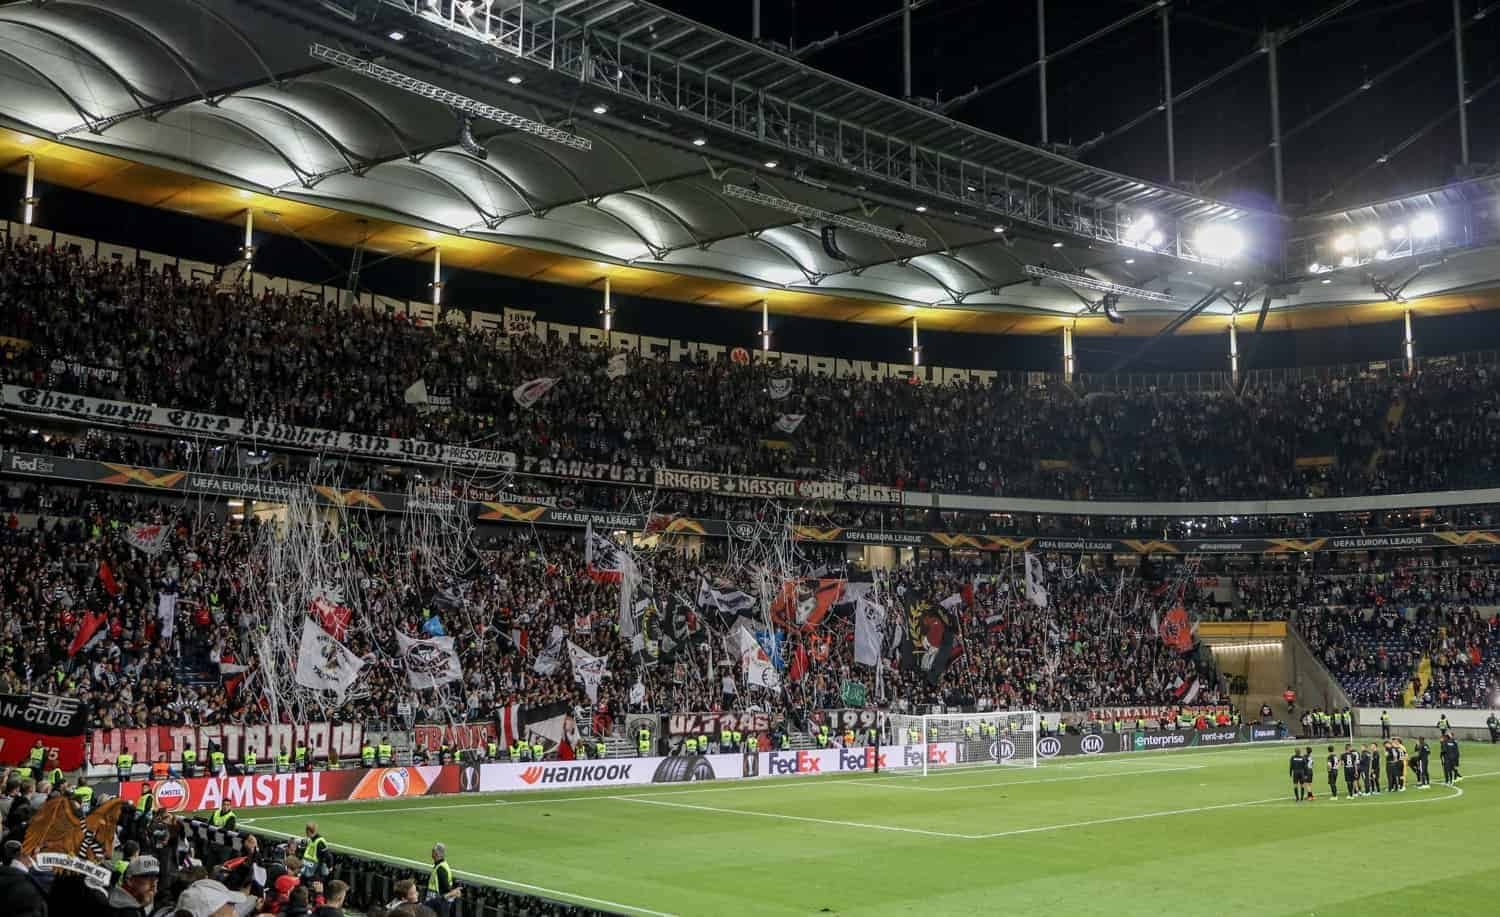 19-20-europaleague-eintracht-frankfurt-arsenal-london-34